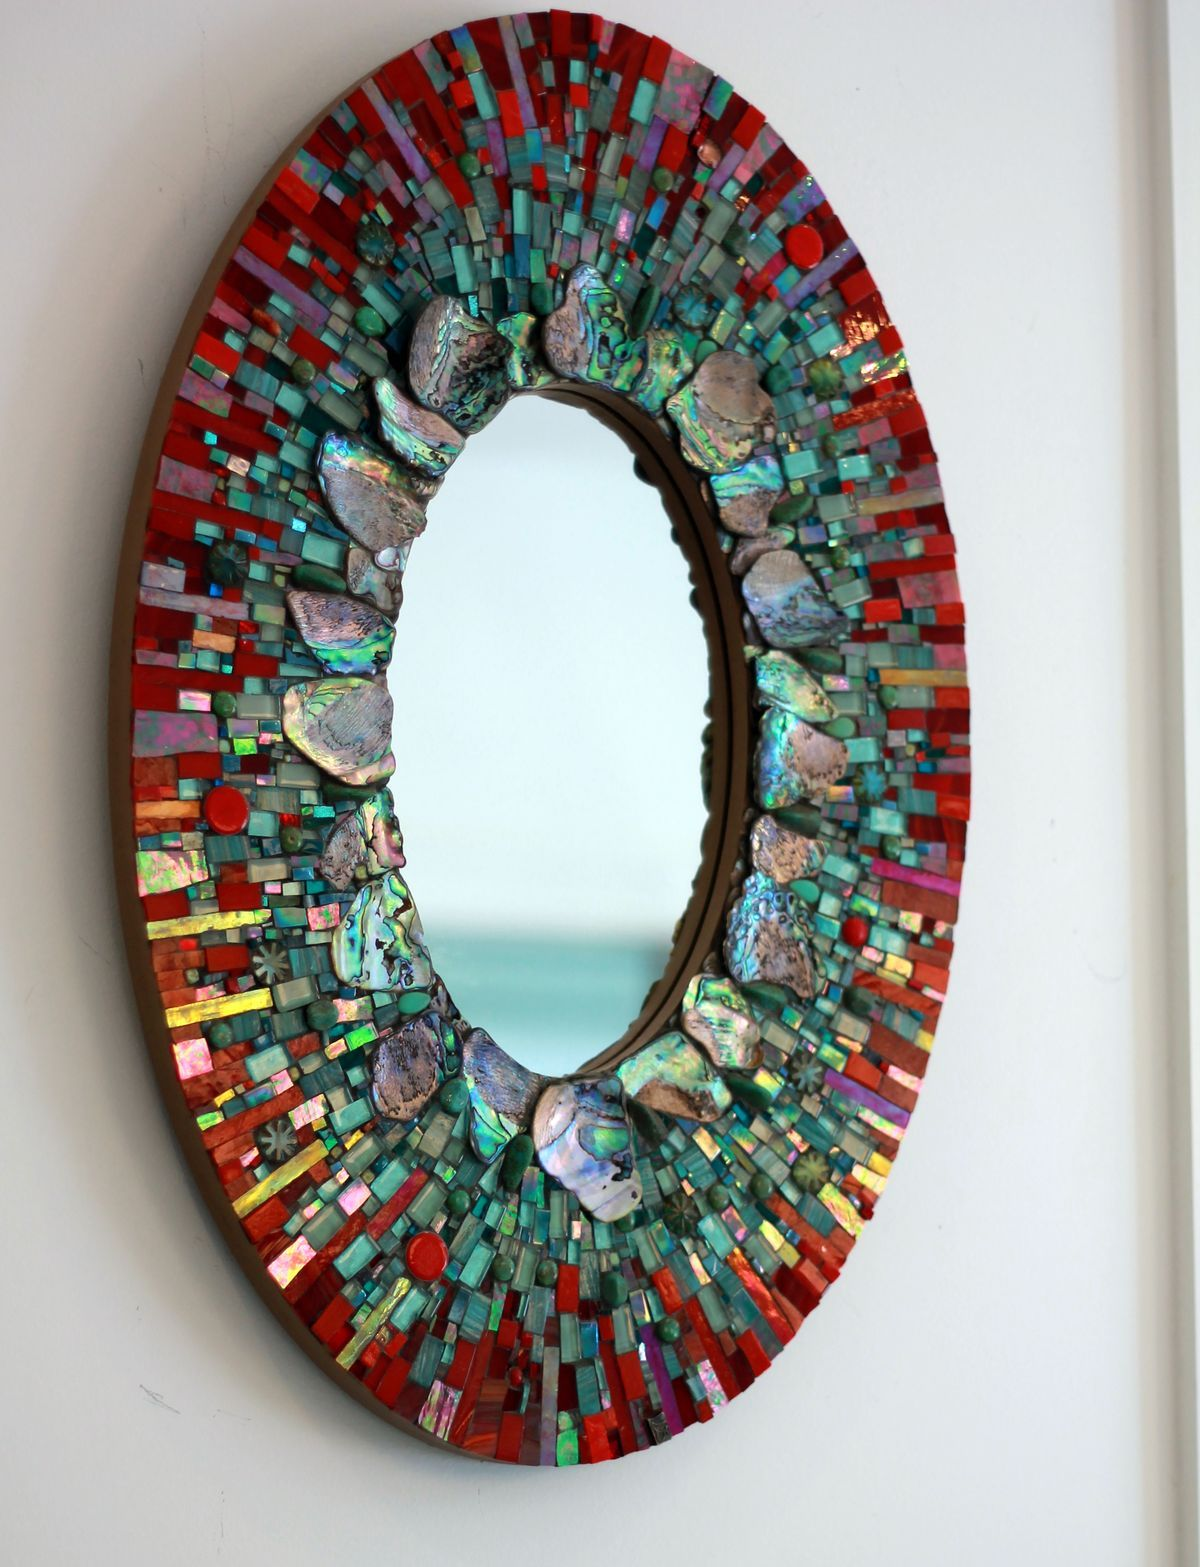 Spiegel Mosaik Custom Mosaics Mirror By Ariel Shoemaker. Love The Color